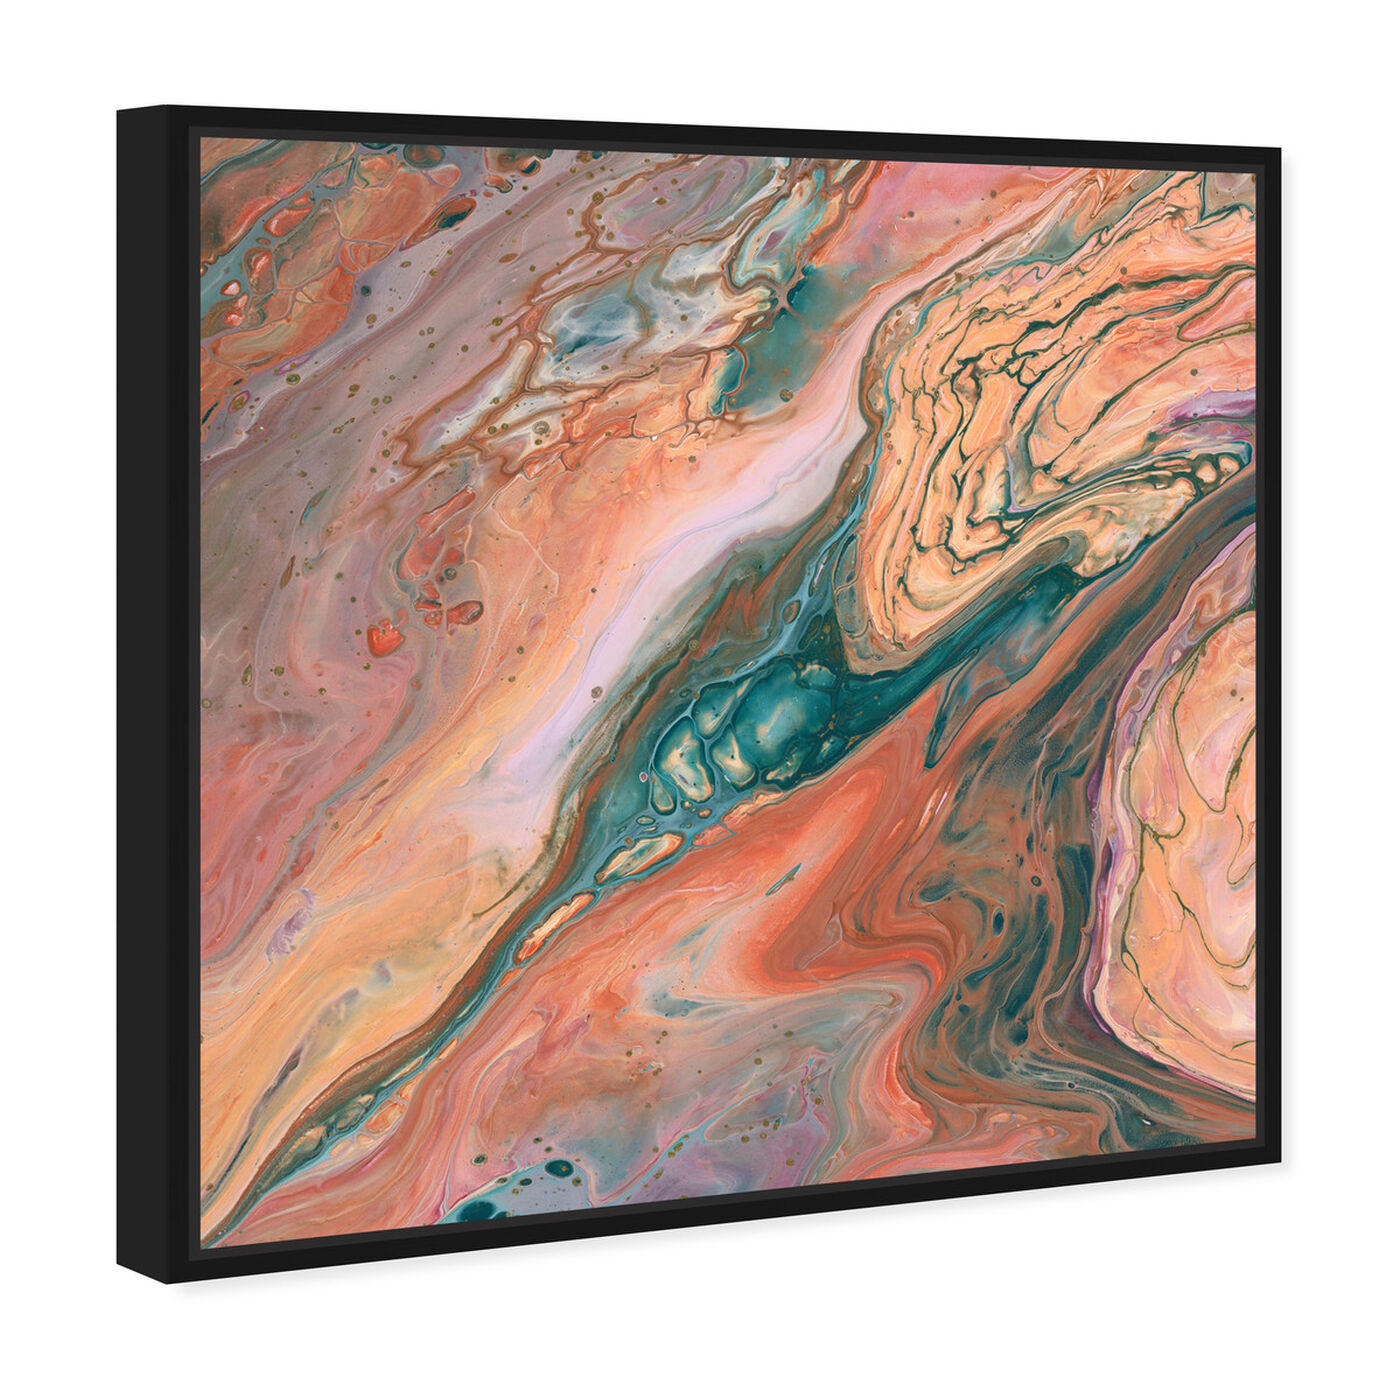 Angled view of Orange Surreal featuring abstract and paint art.